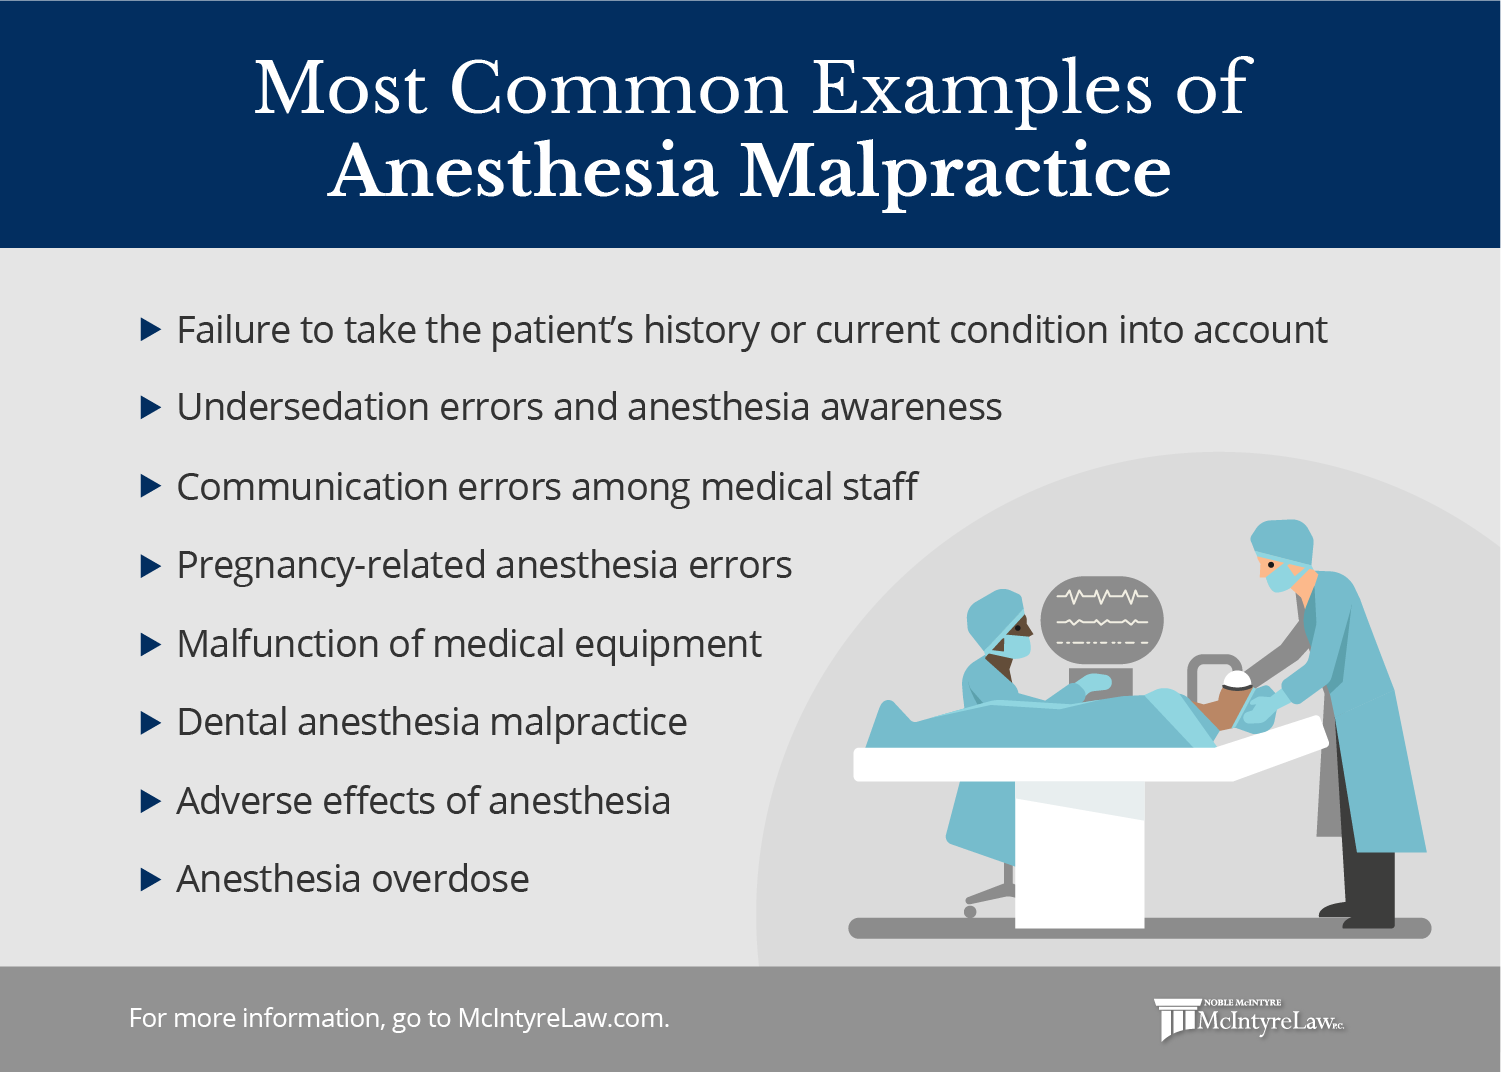 most common examples of anesthesia malpractice